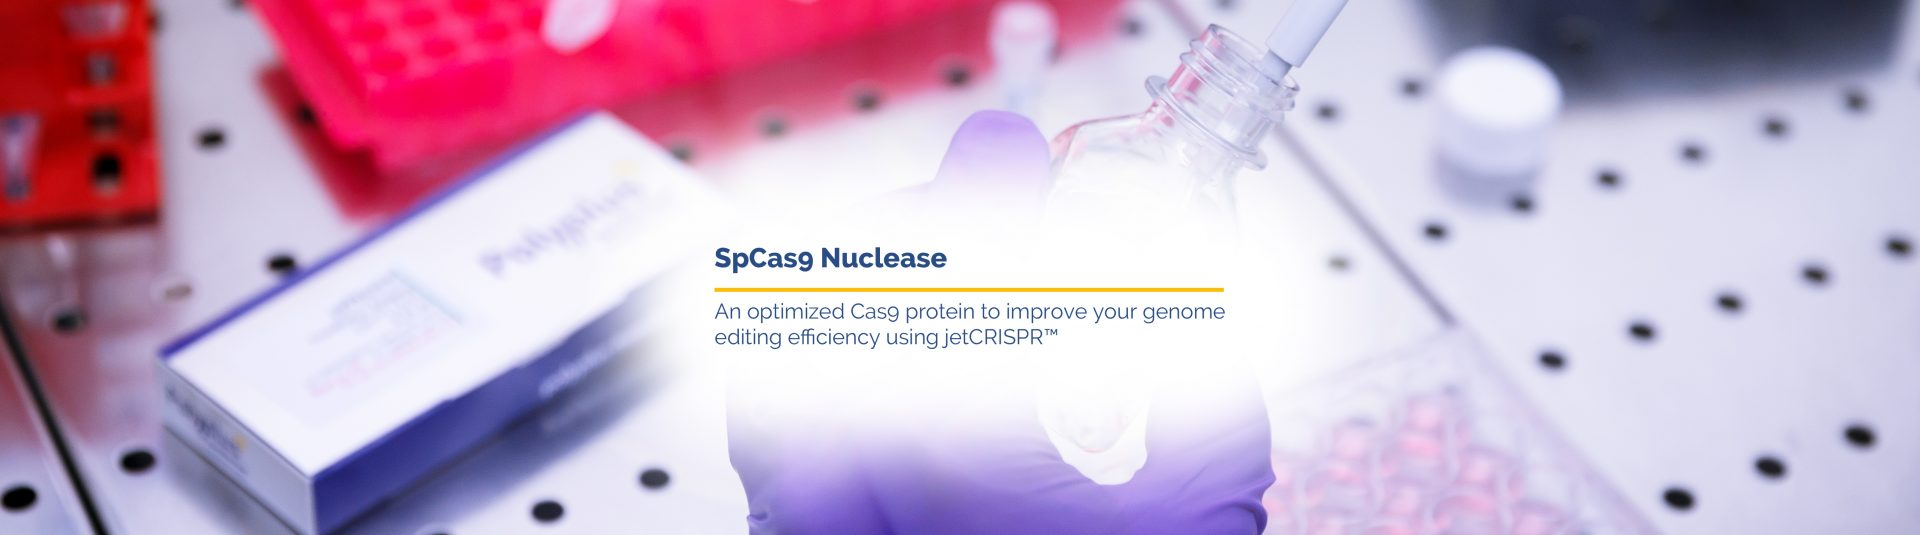 SpCas9 Nuclease - Product image - Polyplus-transfection